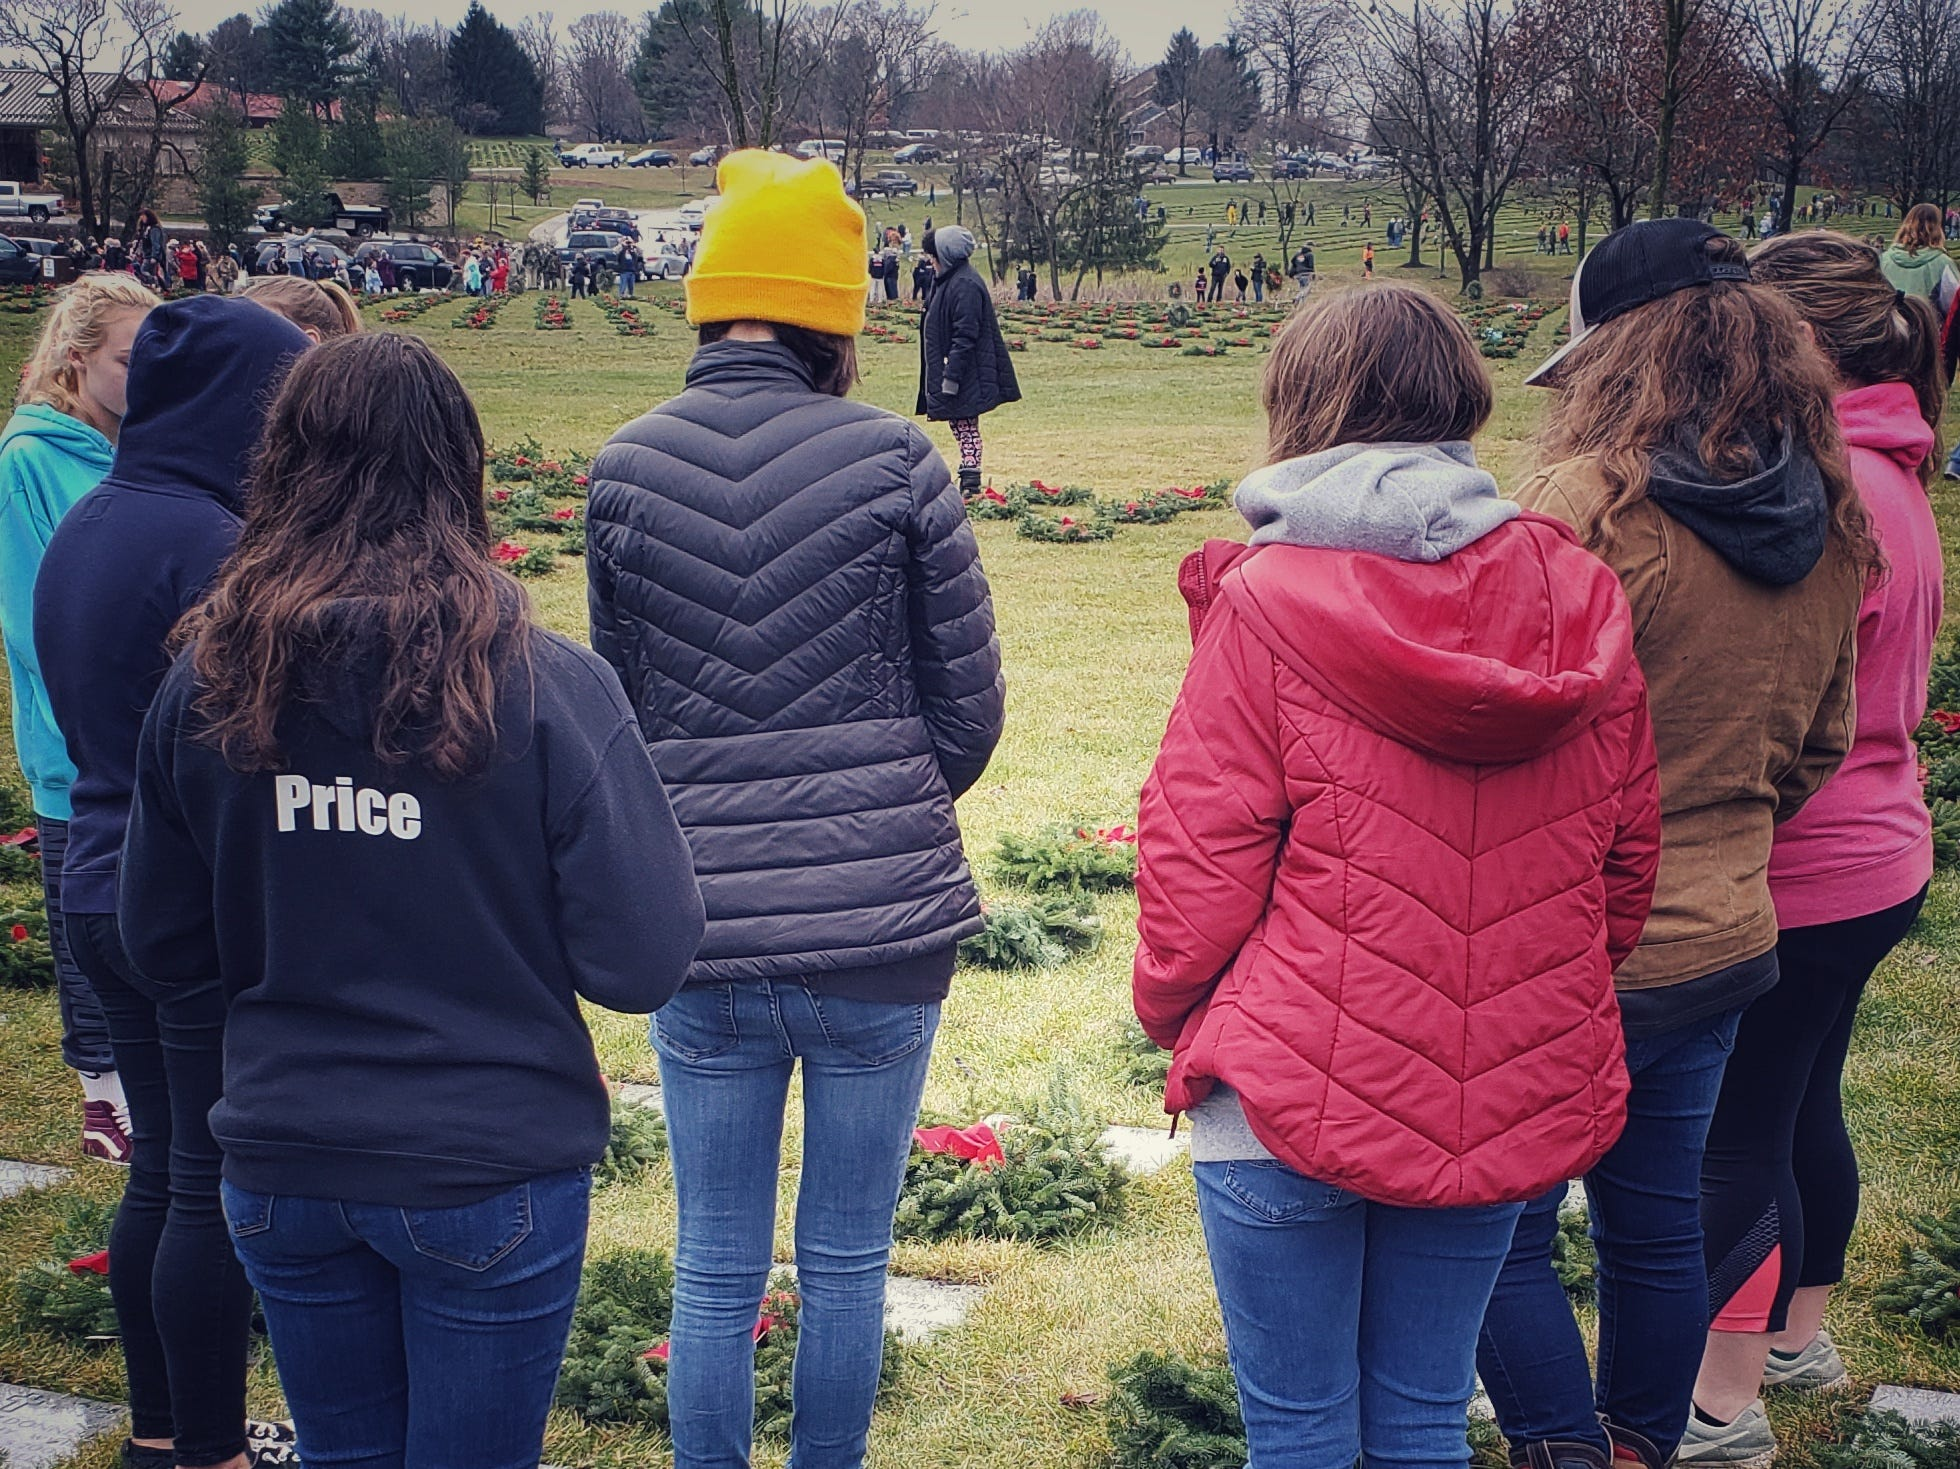 The Palmyra softball team was joined by the school's baseball, football, boys soccer and boys lacrosse teams in taking part in the Wreaths Across America ceremony on Dec. 15 at Indiantown Gap National Cemetary.